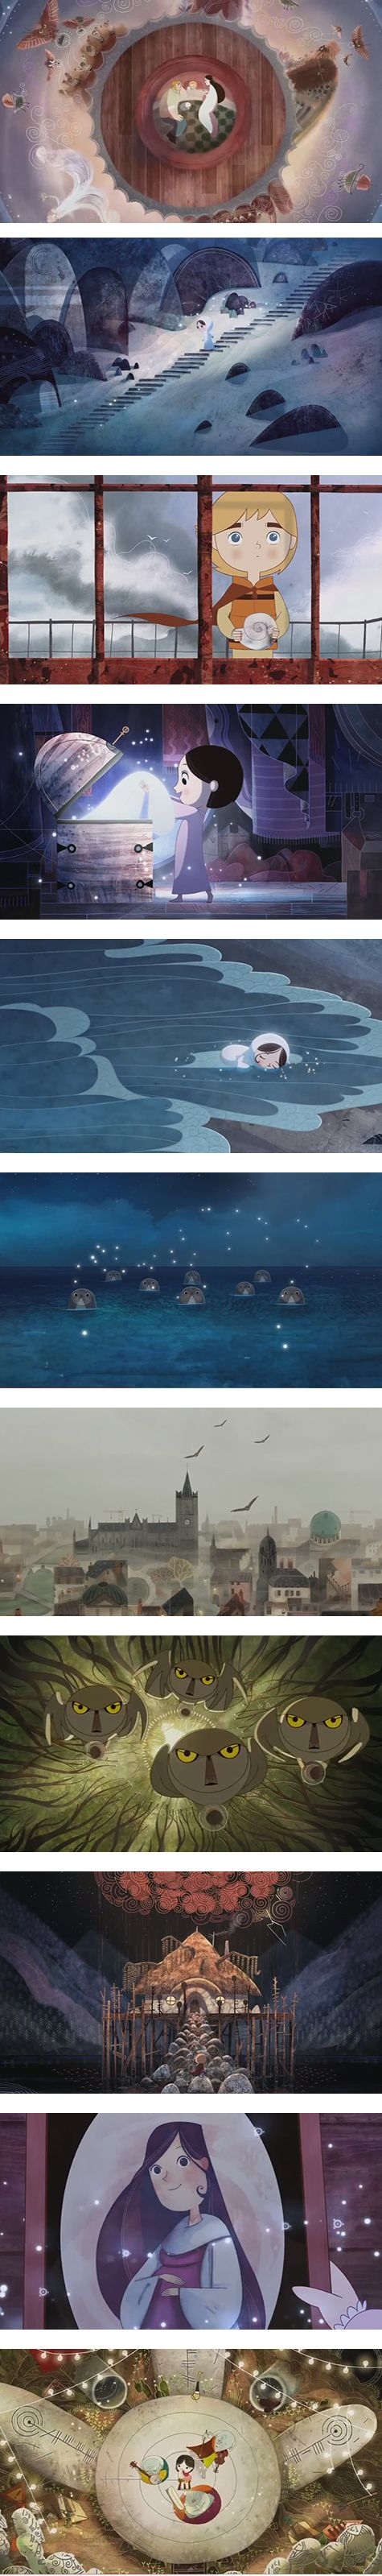 Song of the Sea – Haven't seen this, but I'd like to. By the same artist…